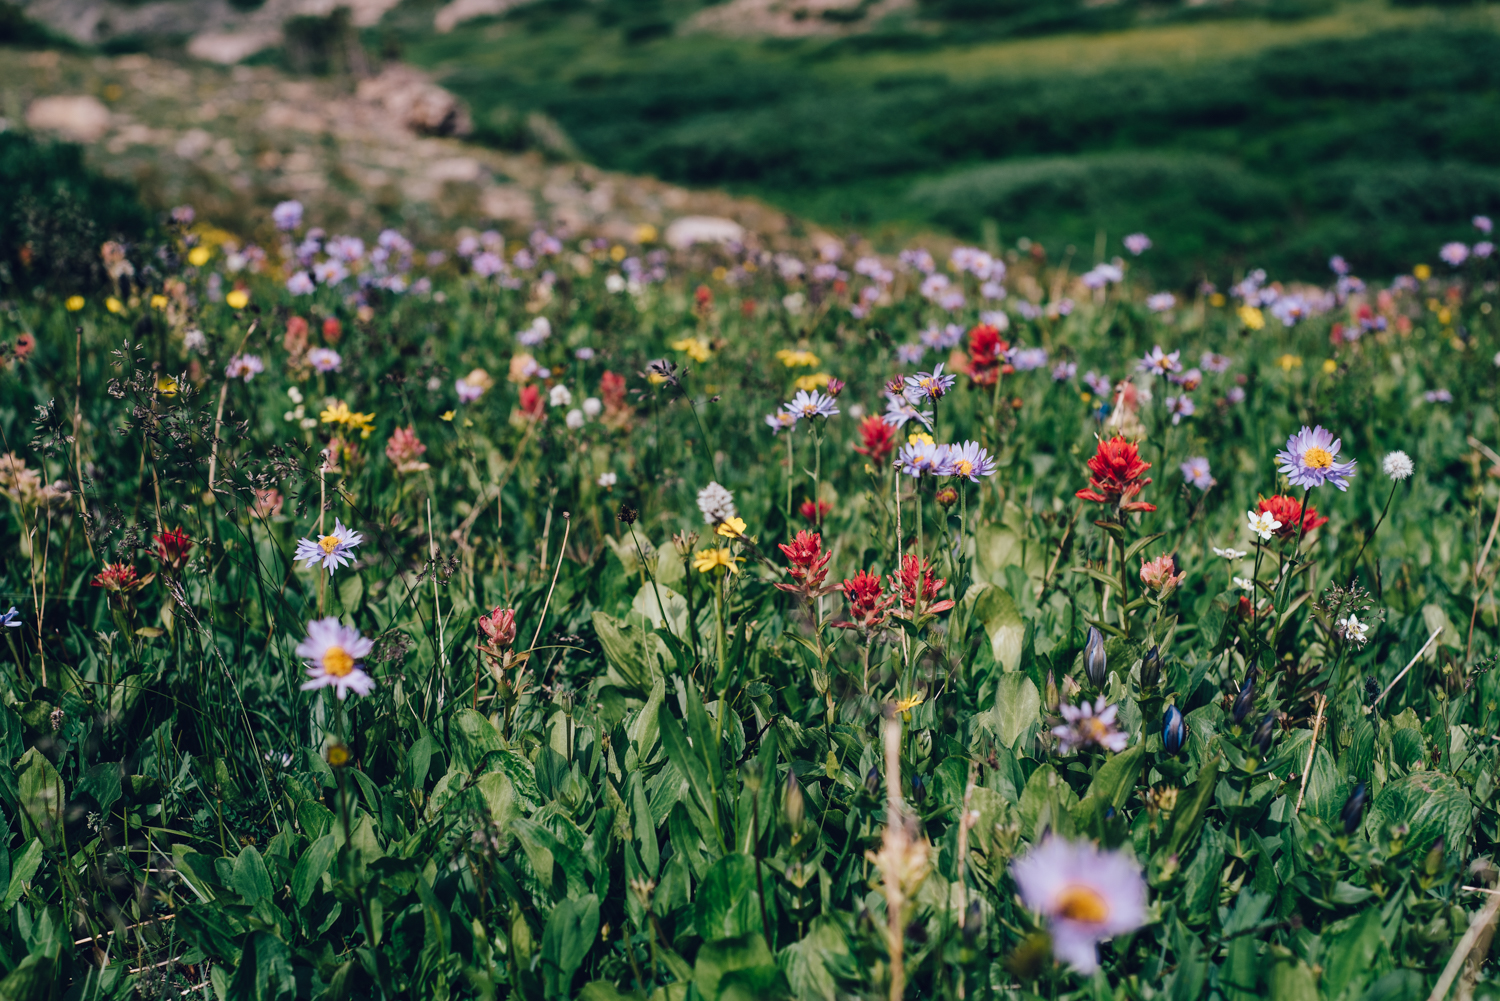 SOO MANY WILDFLOWERS!!